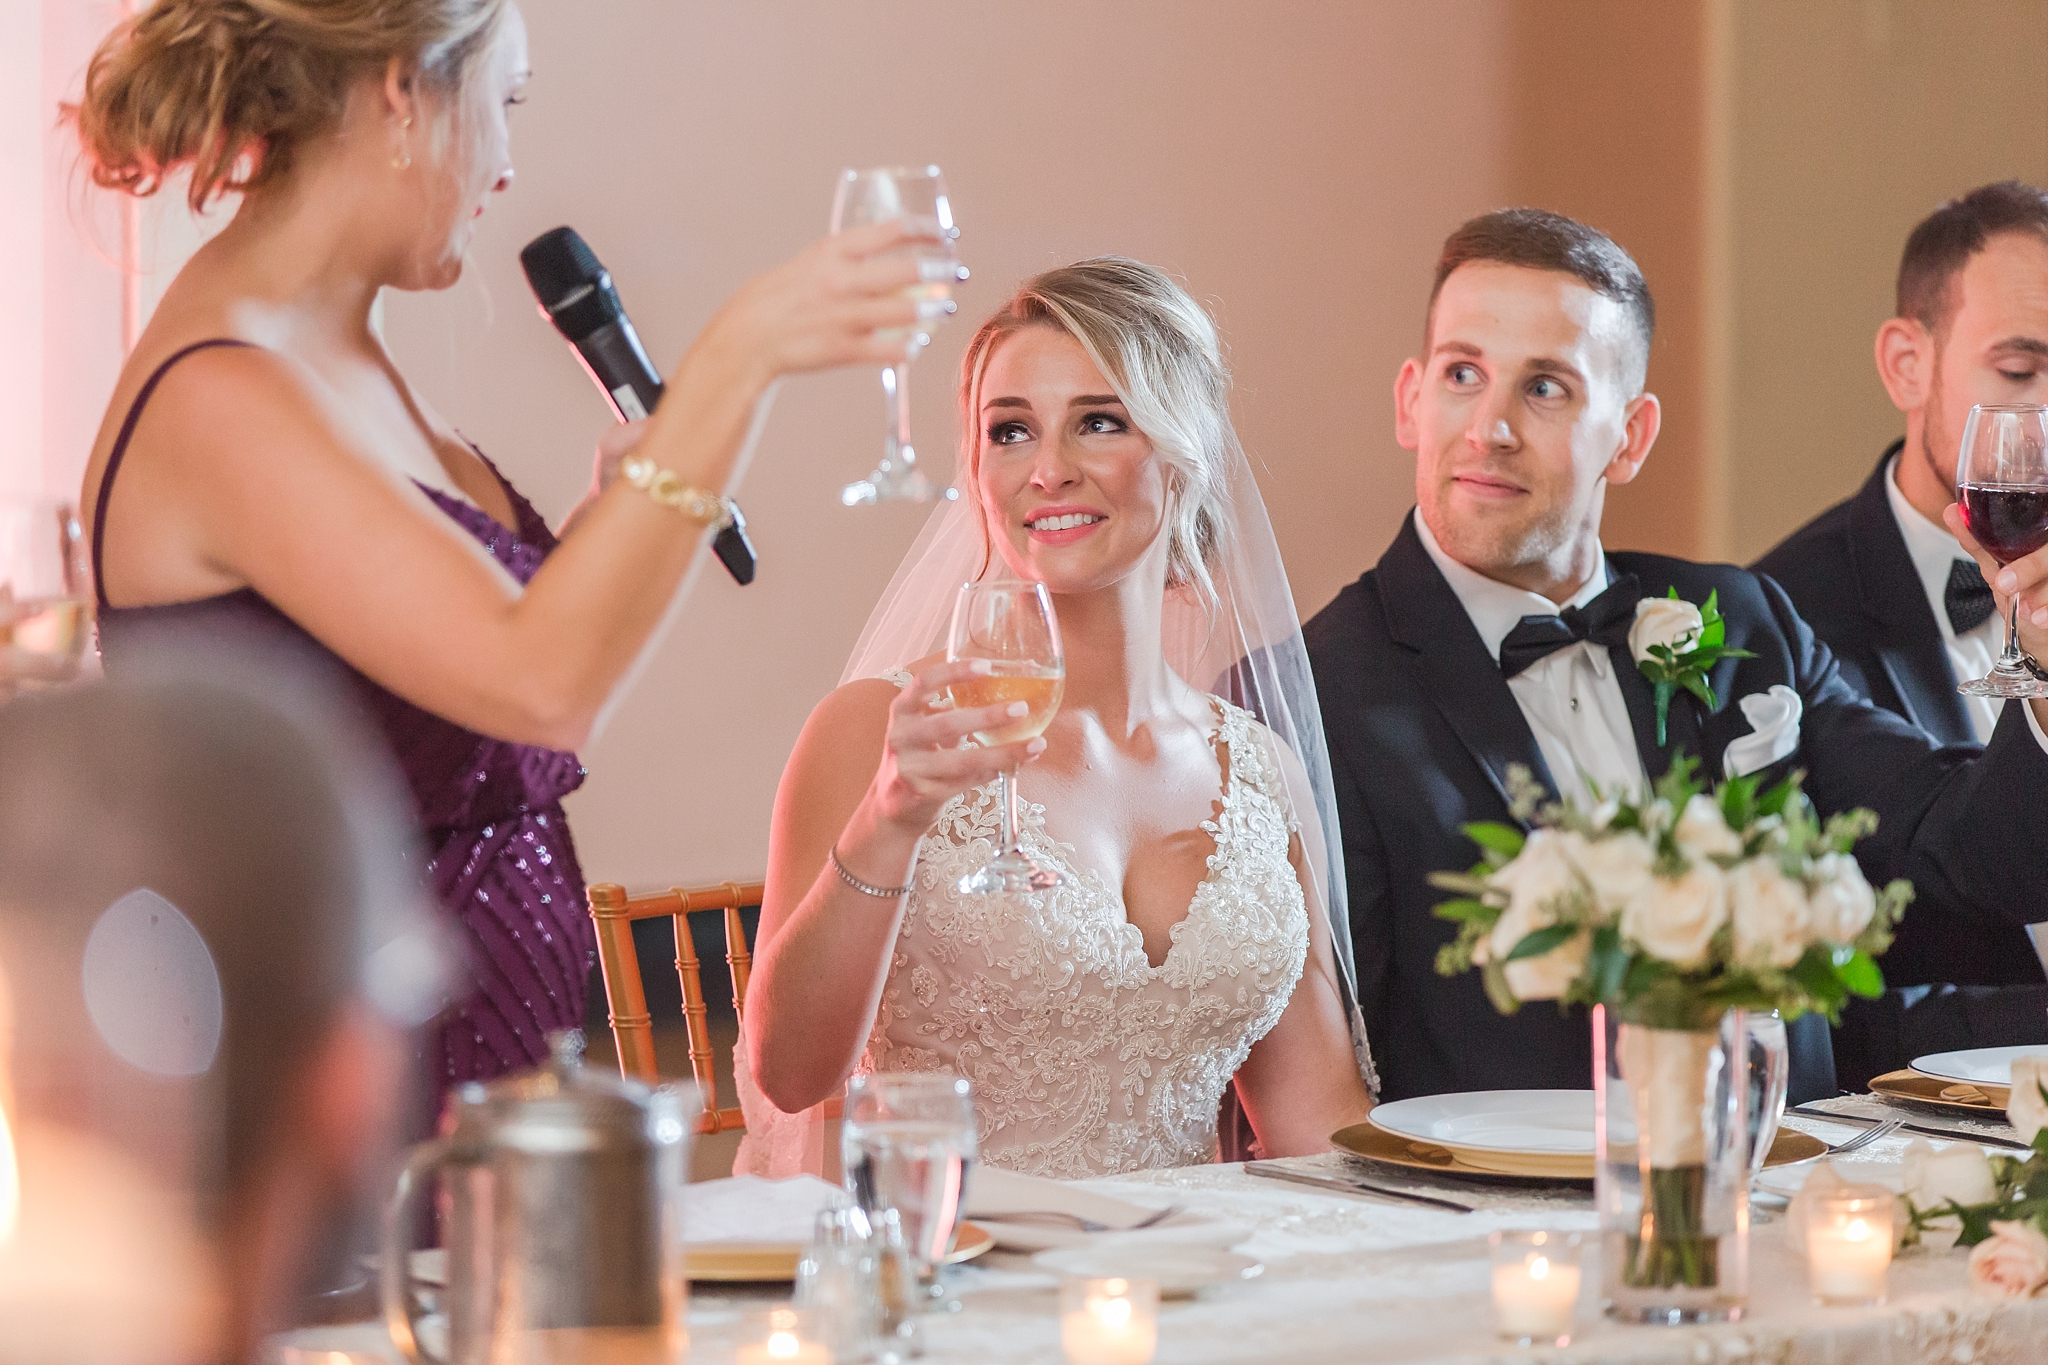 candid-romantic-wedding-photos-at-the-masonic-temple-belle-isle-detroit-institute-of-arts-in-detroit-michigan-by-courtney-carolyn-photography_0091.jpg